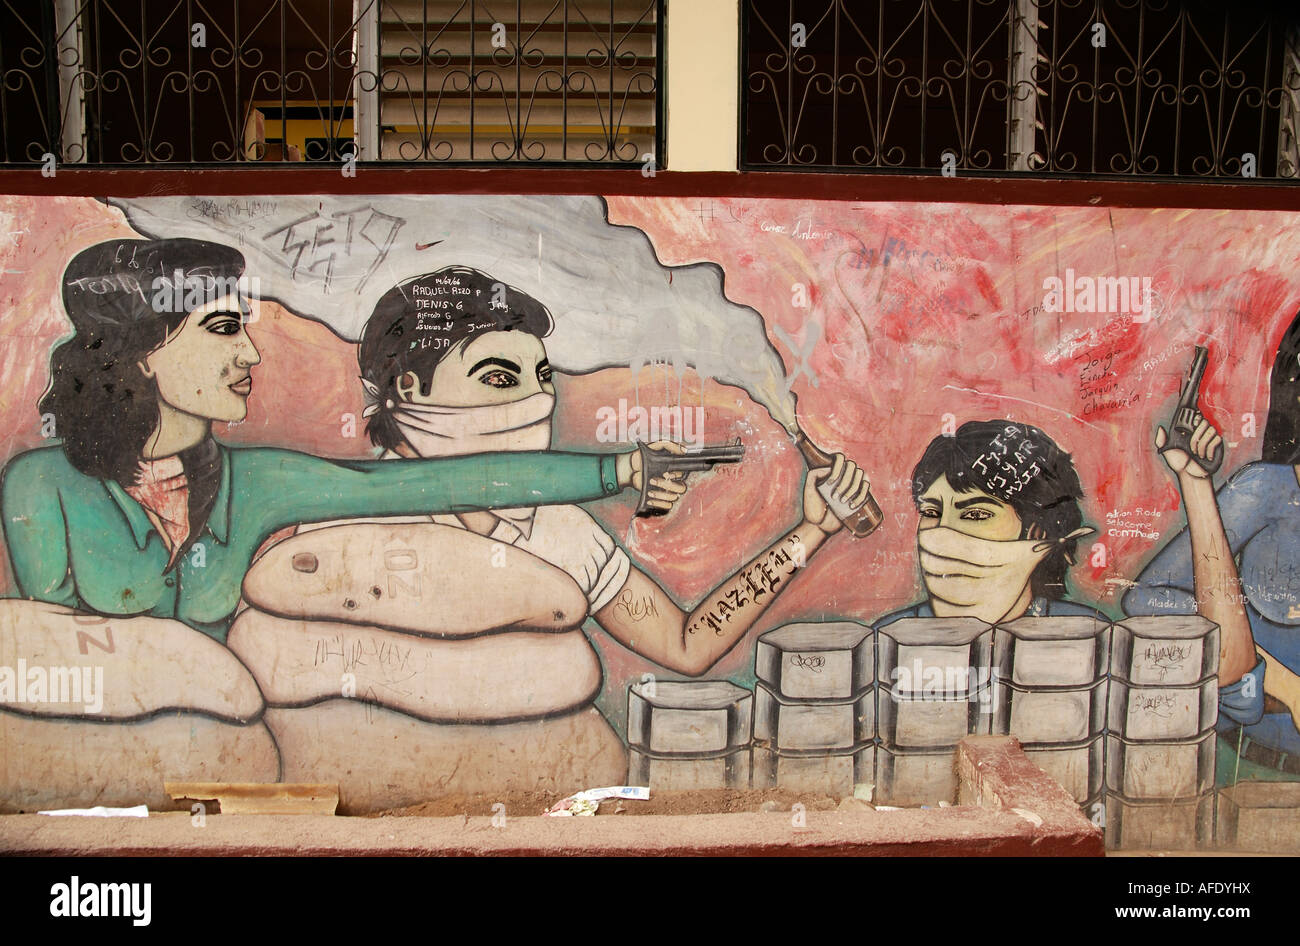 Wall mural depicting the Nicaraguan Revolution led by the FSLN against the Somoza governement, Jinotega, Nicaragua Stock Photo